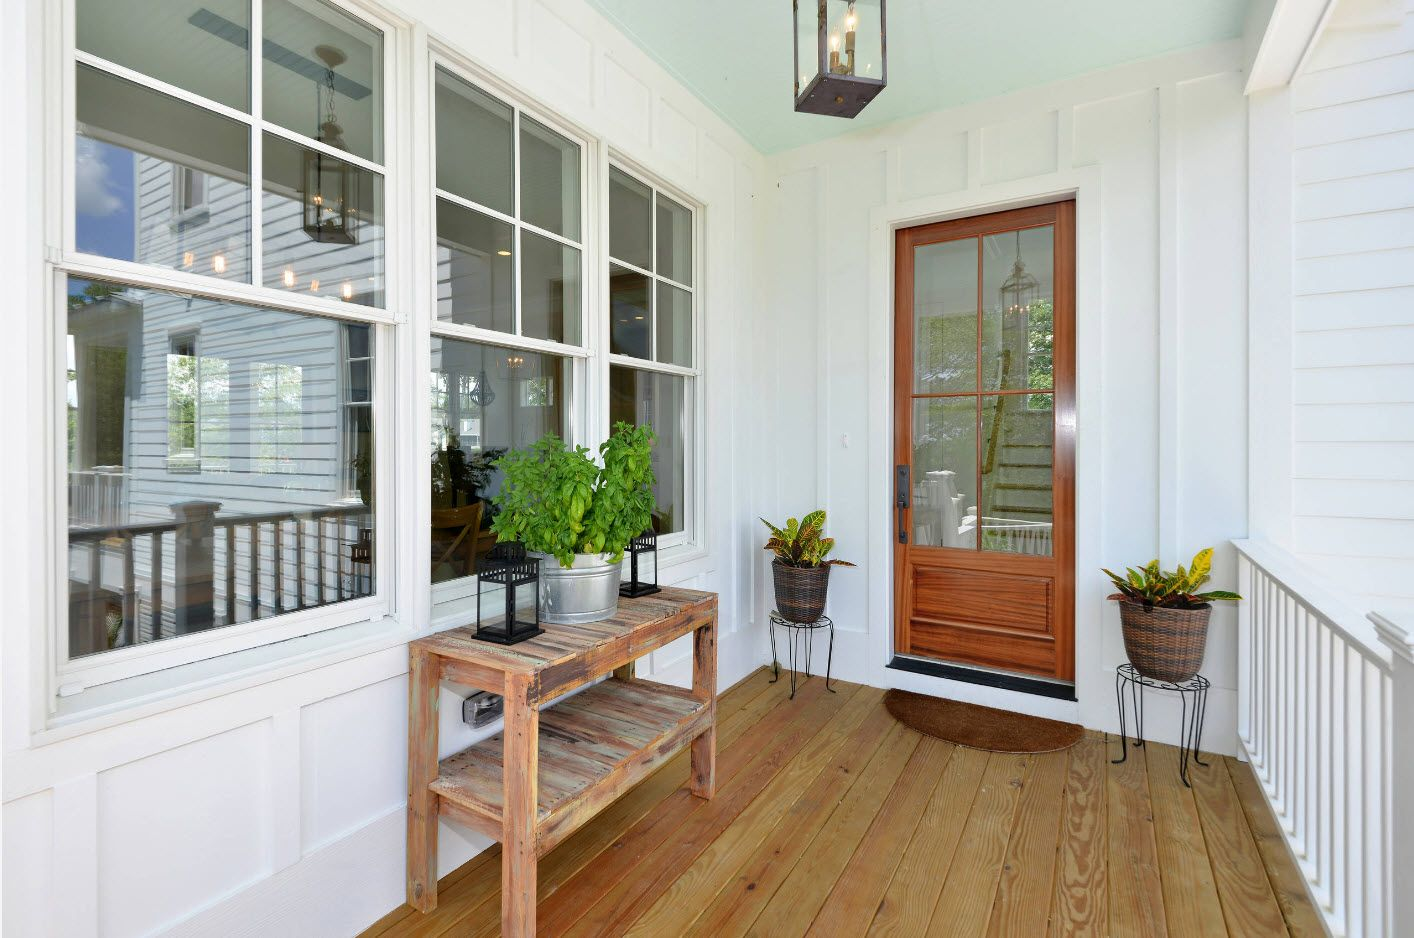 Country House Porch Decoration & Design Ideas. Eco touch with the plant at the door